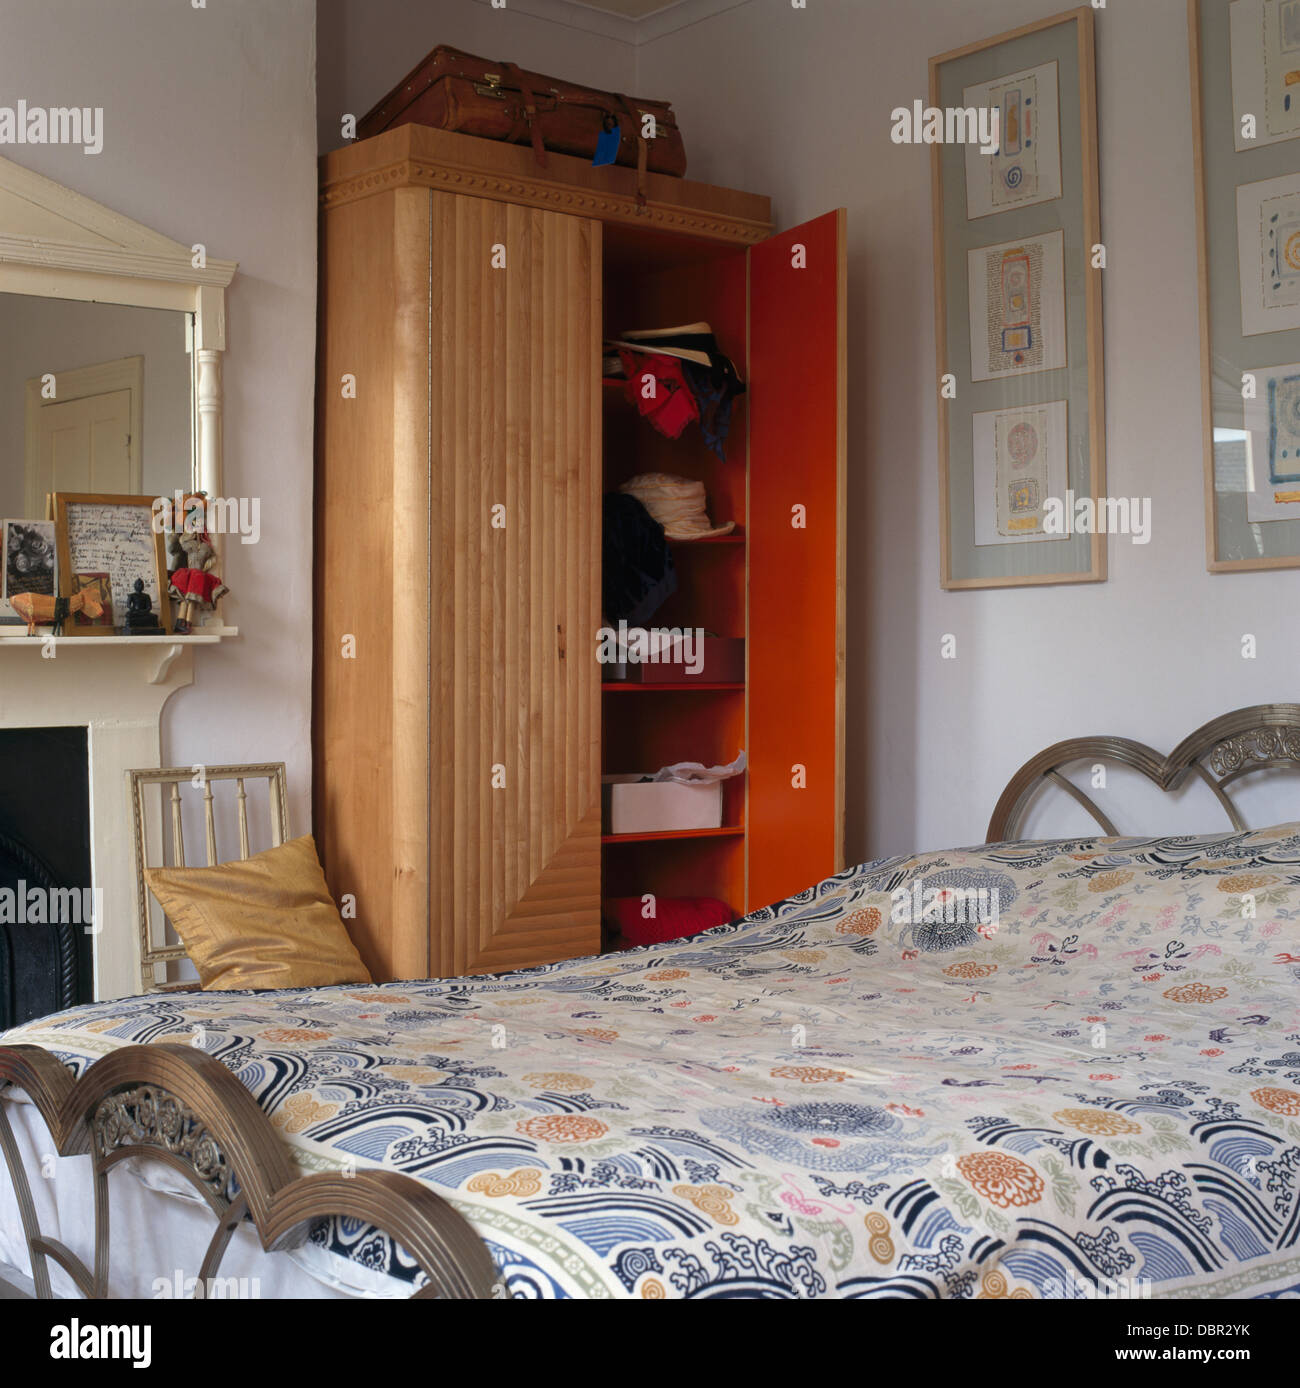 Wardrobe In Alcove Beside Fireplace In Small Bedroom With Patterned Duvet  On Metal Bed